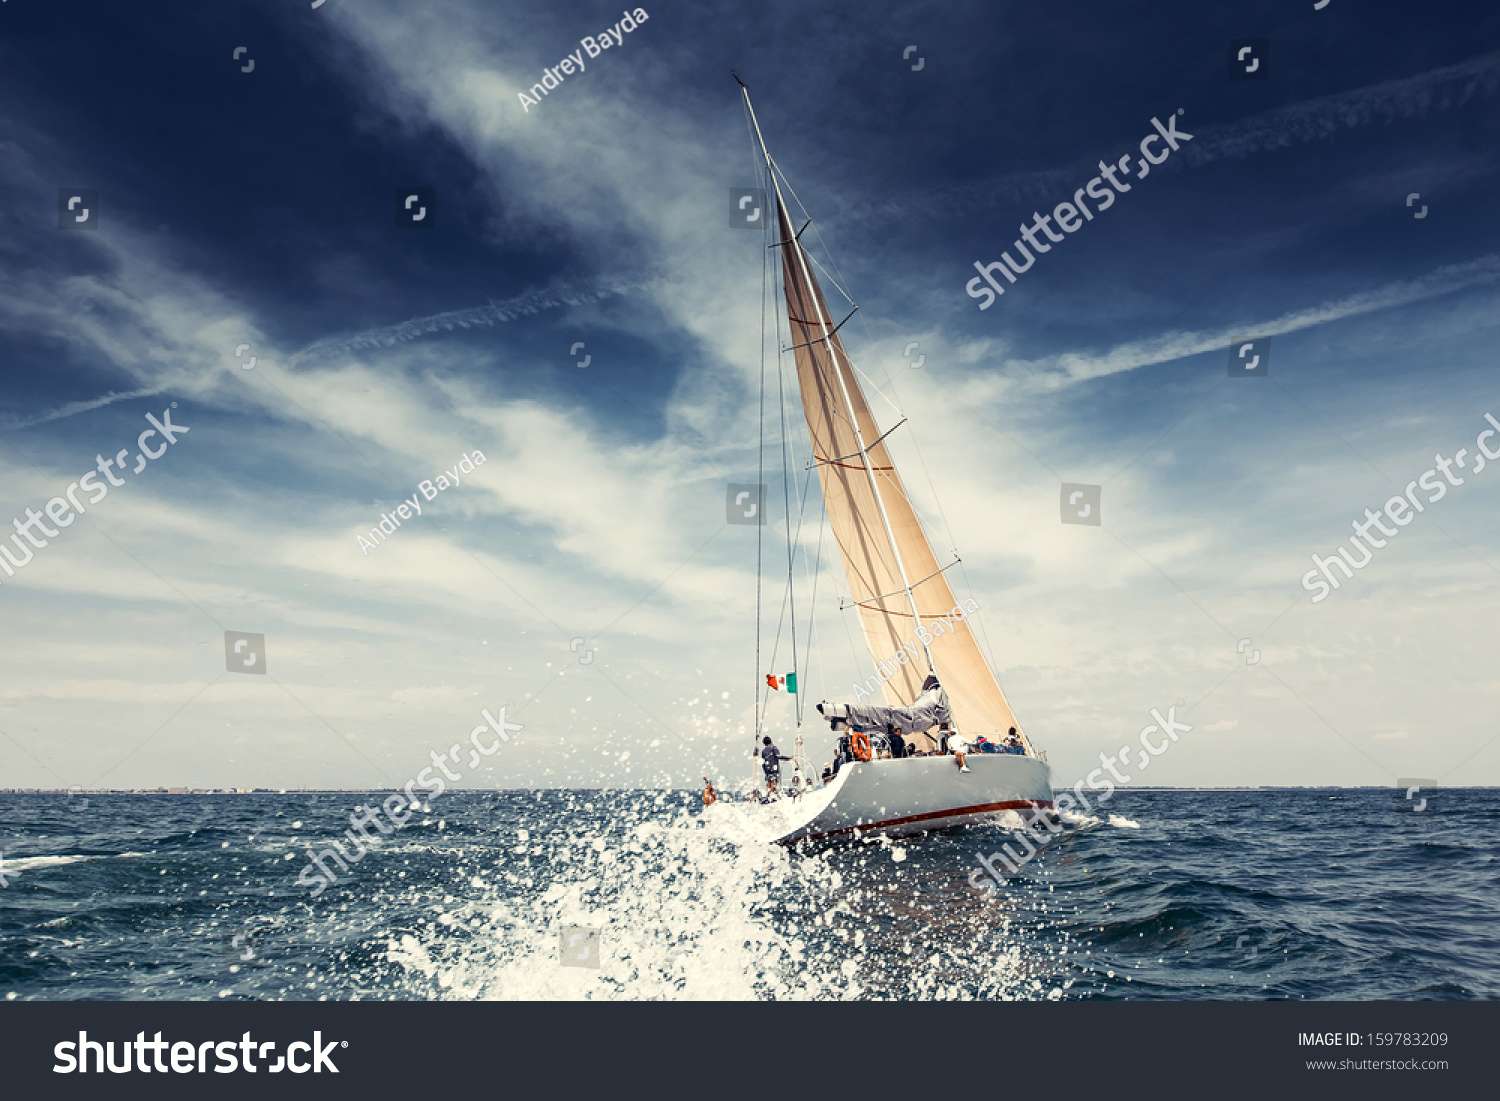 Sailing ship yachts with white sails #159783209